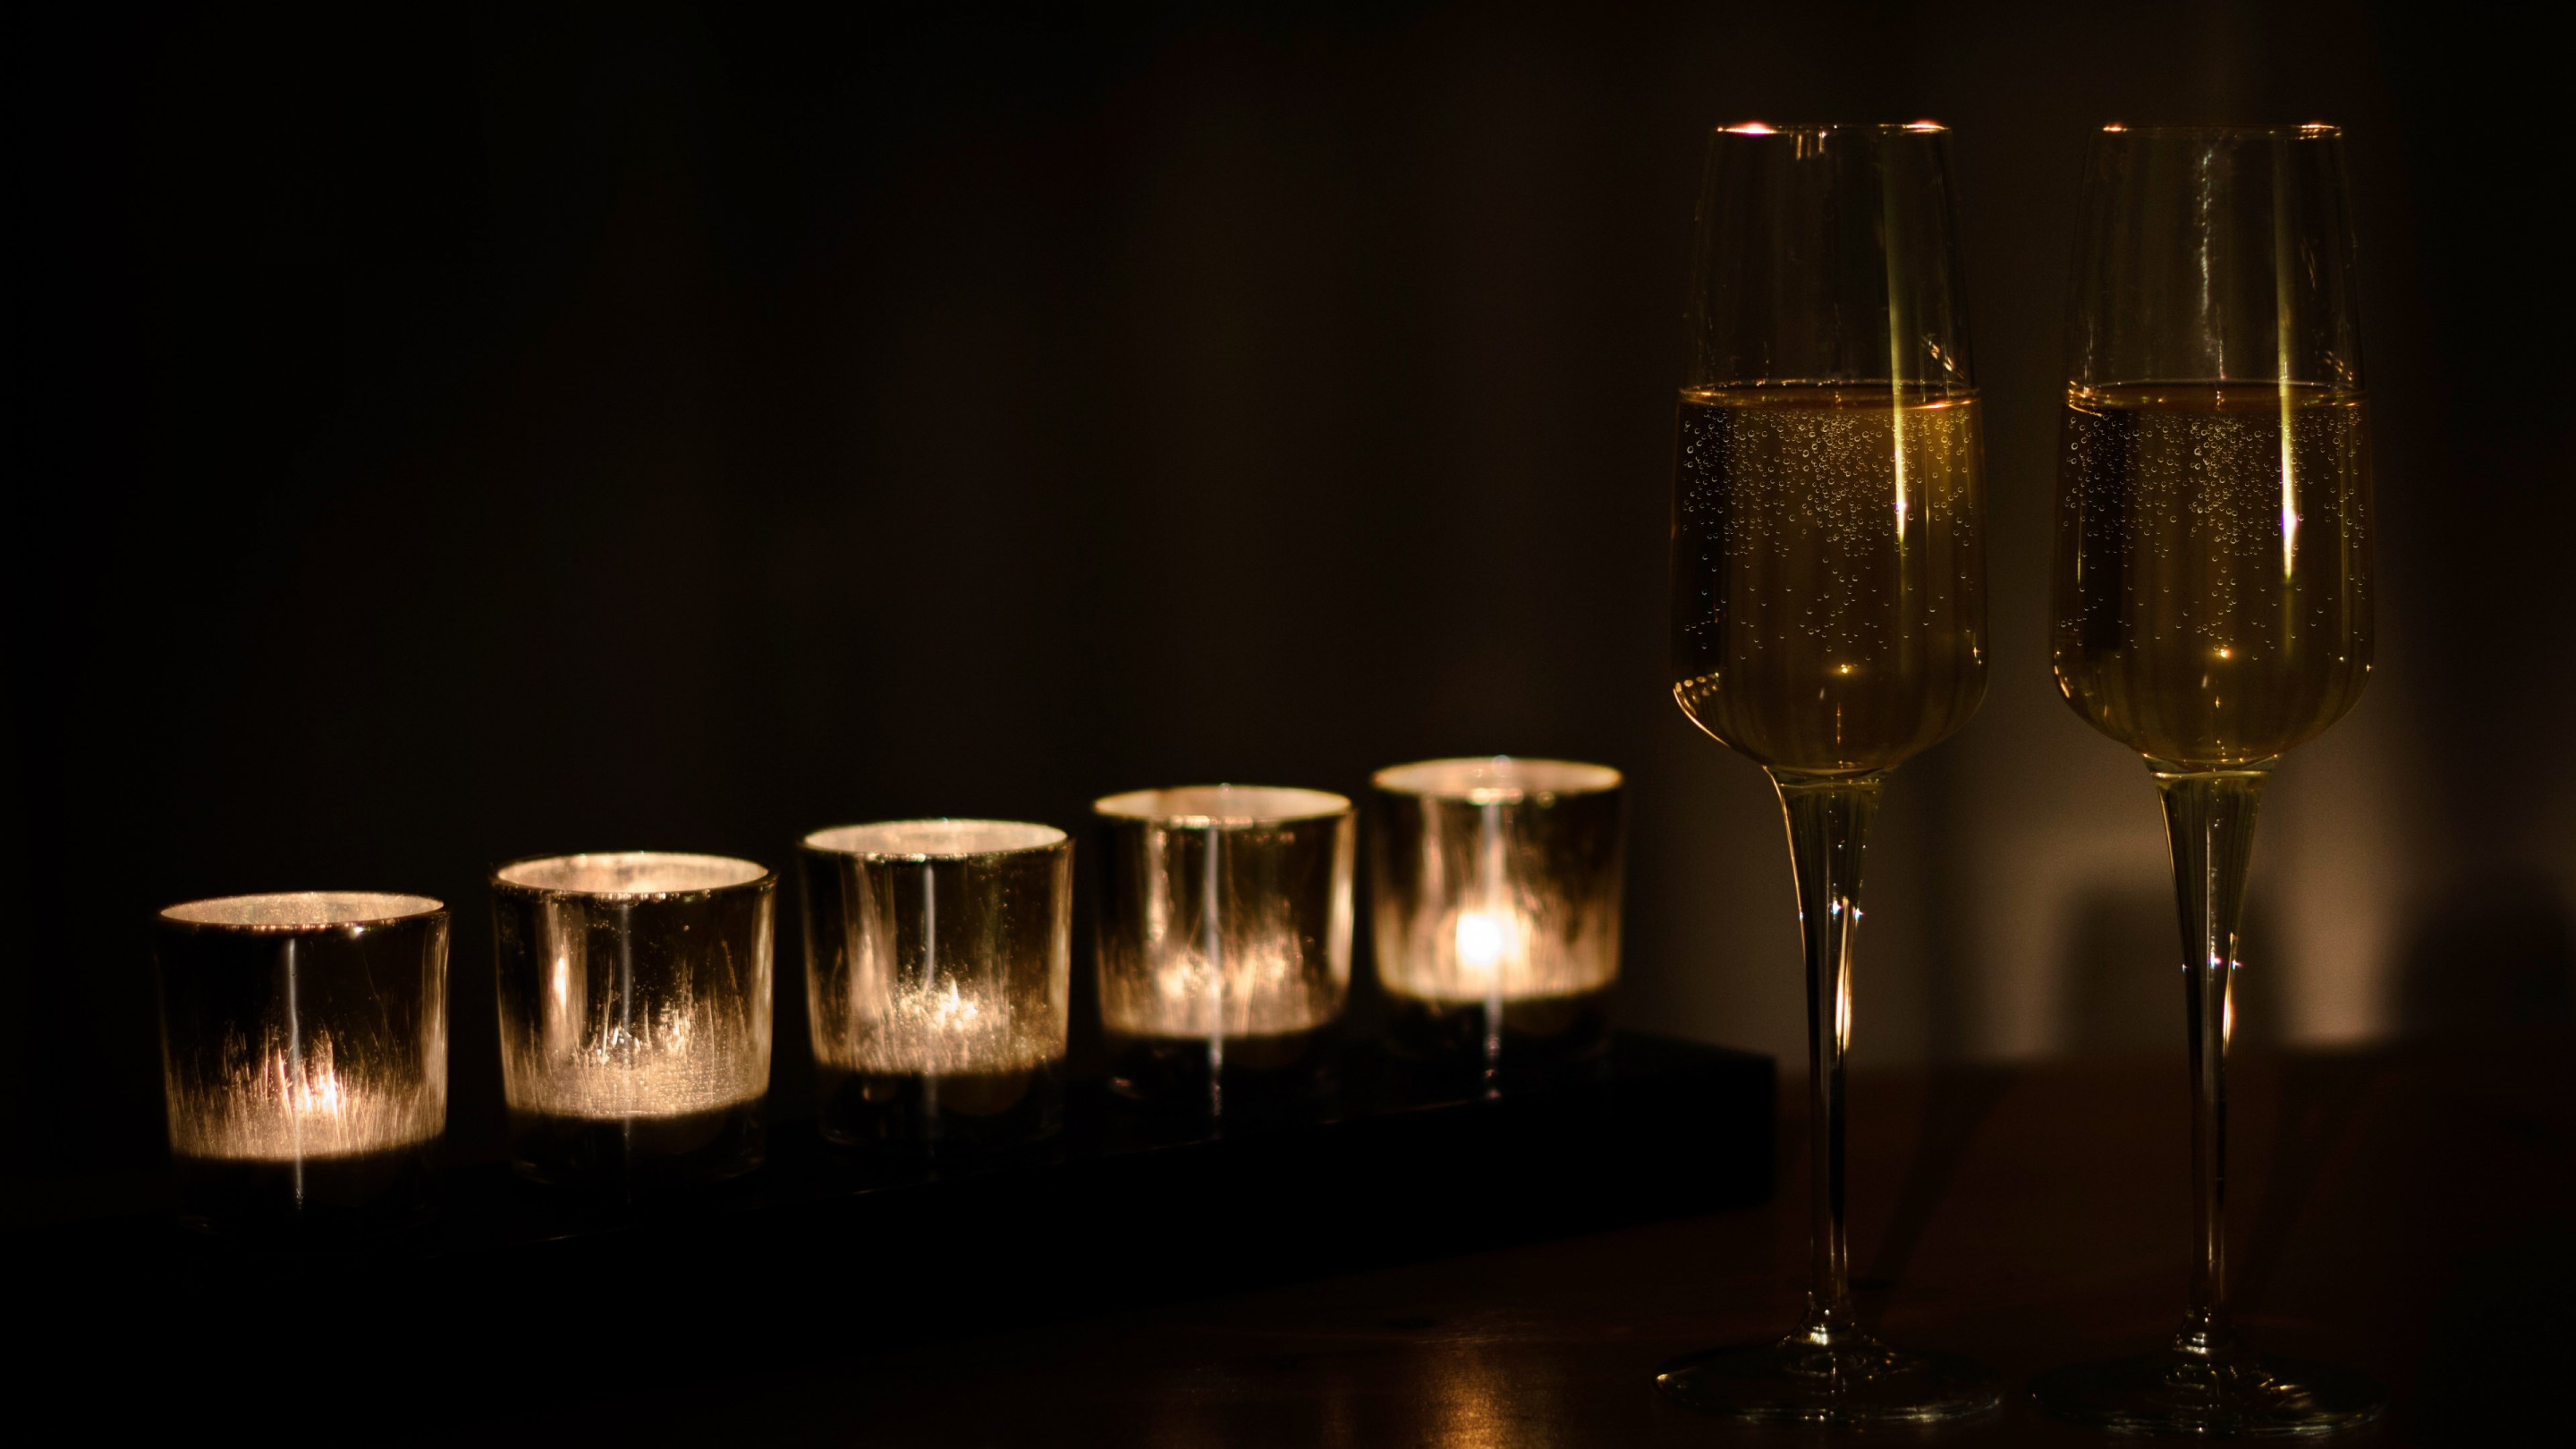 Champagne and candles wallpaper 2880x1620